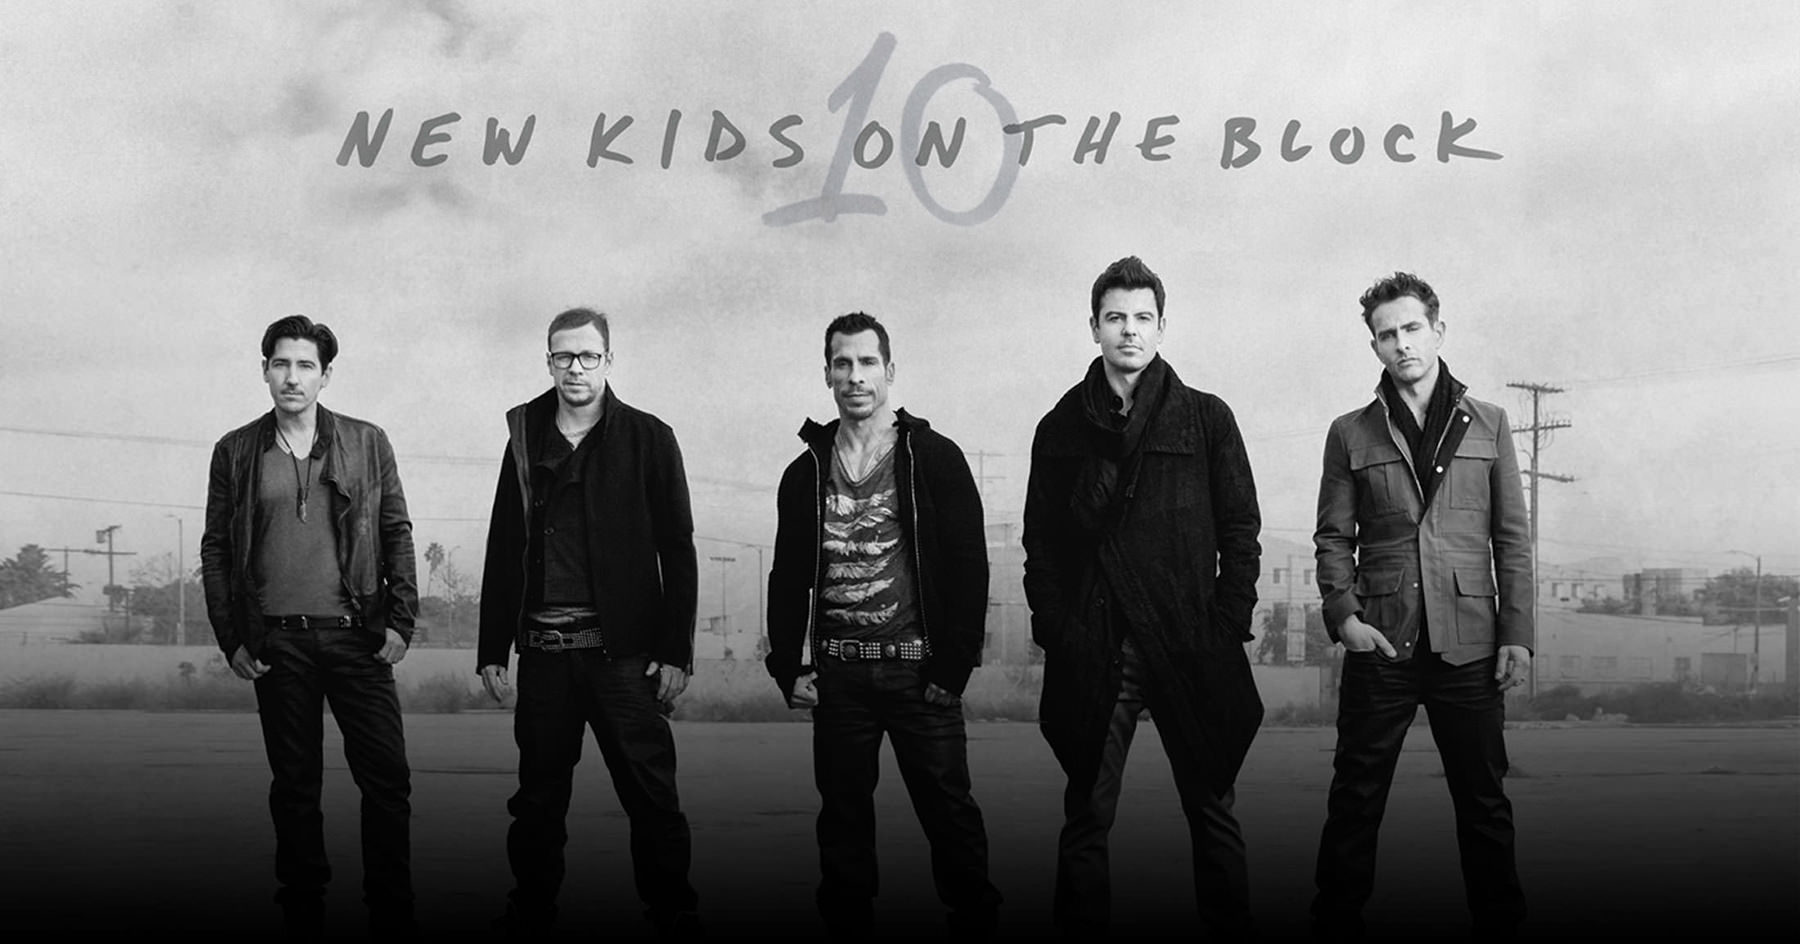 NEW KIDS ON THE BLOCK Tour Dates 2016